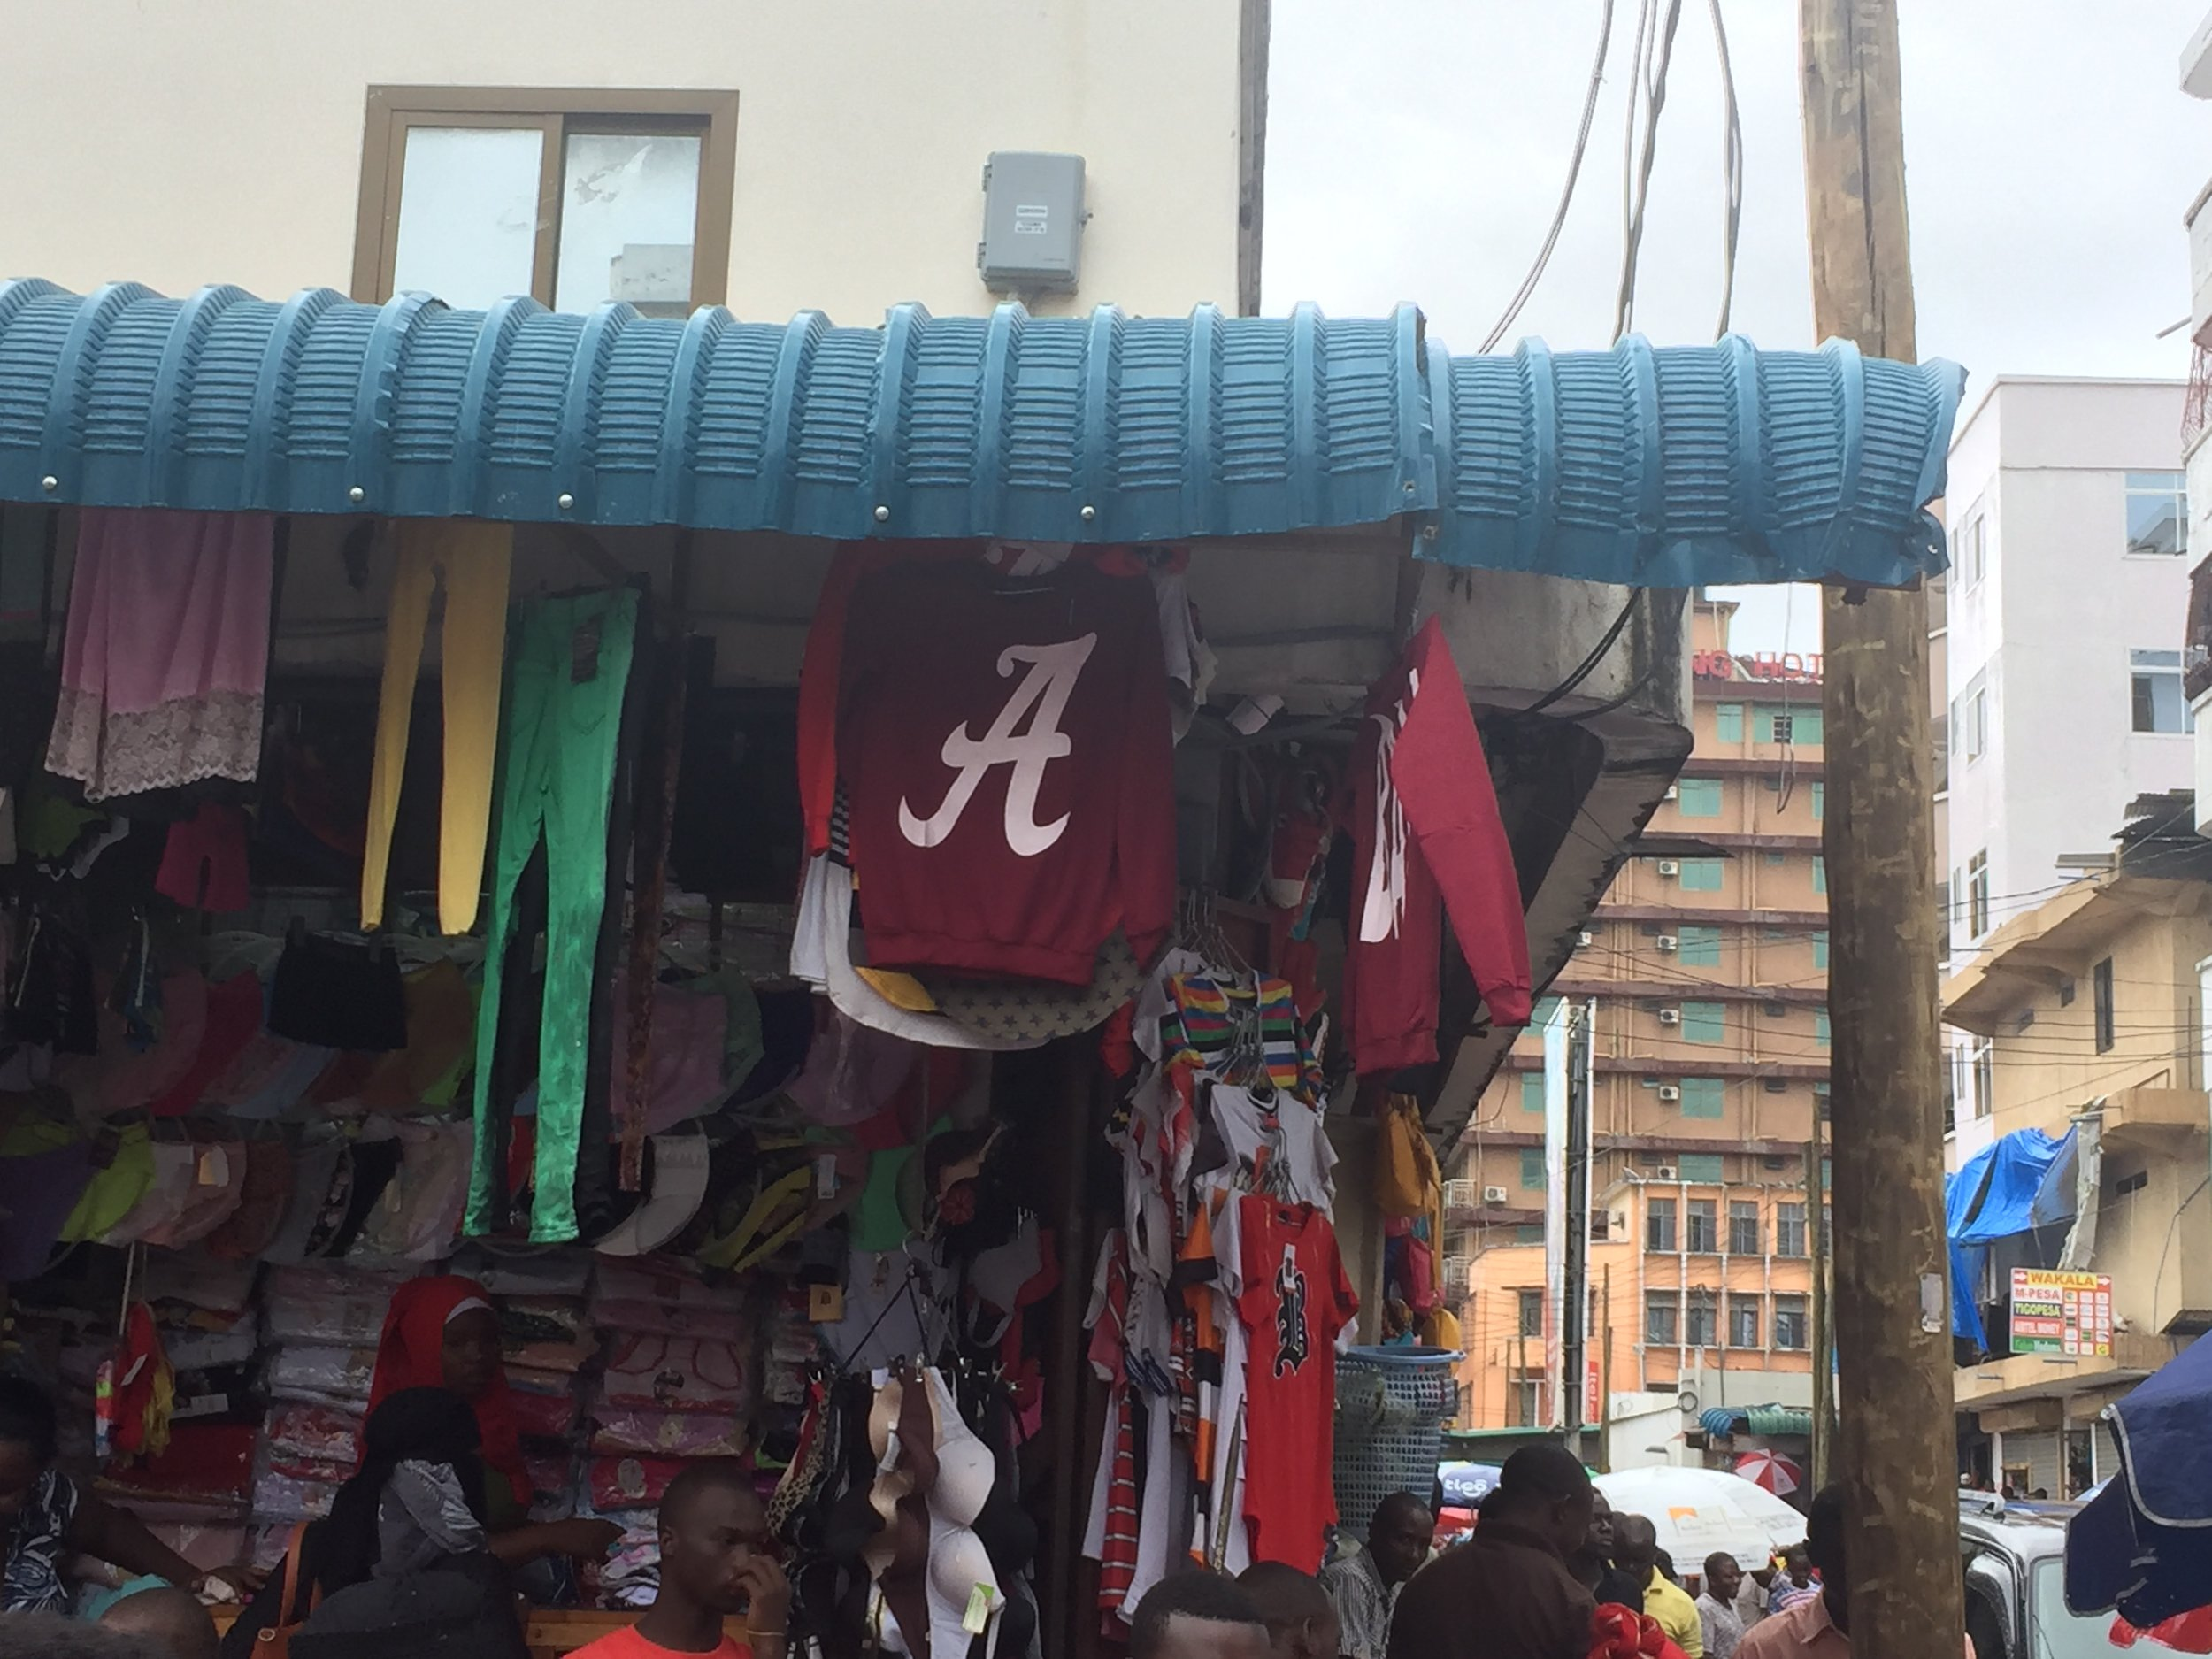 Every team gets knockoff gear made in Tanzania.